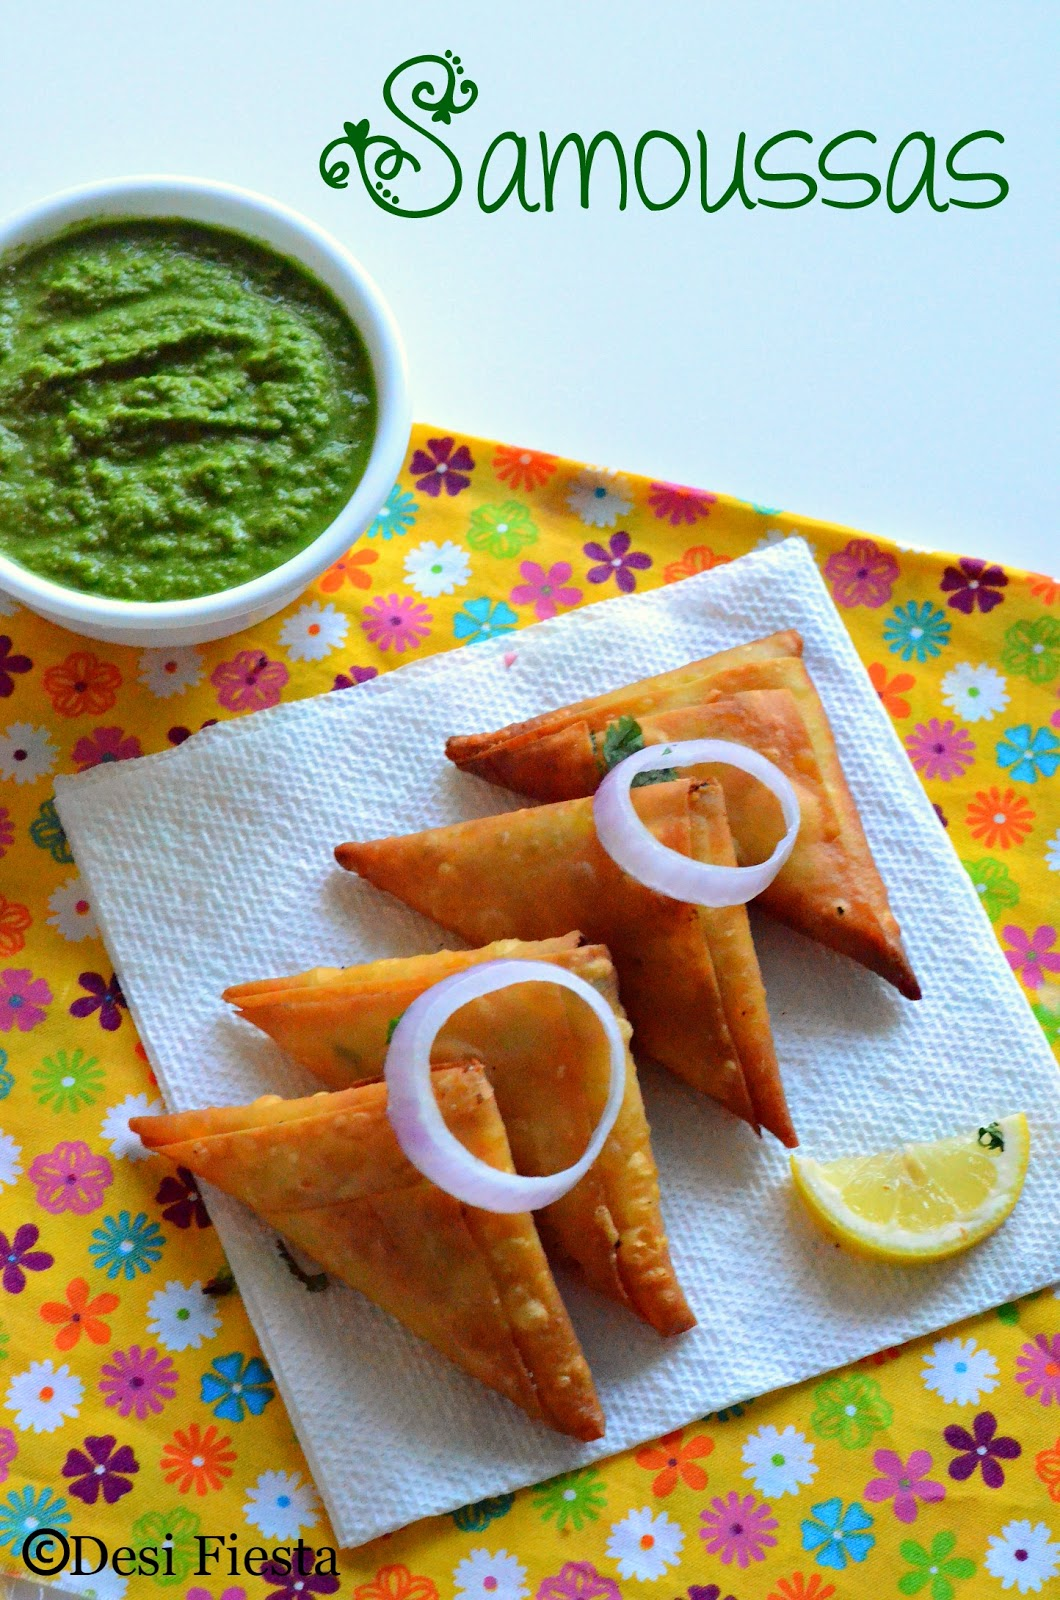 Reunionnaise samosa recipes